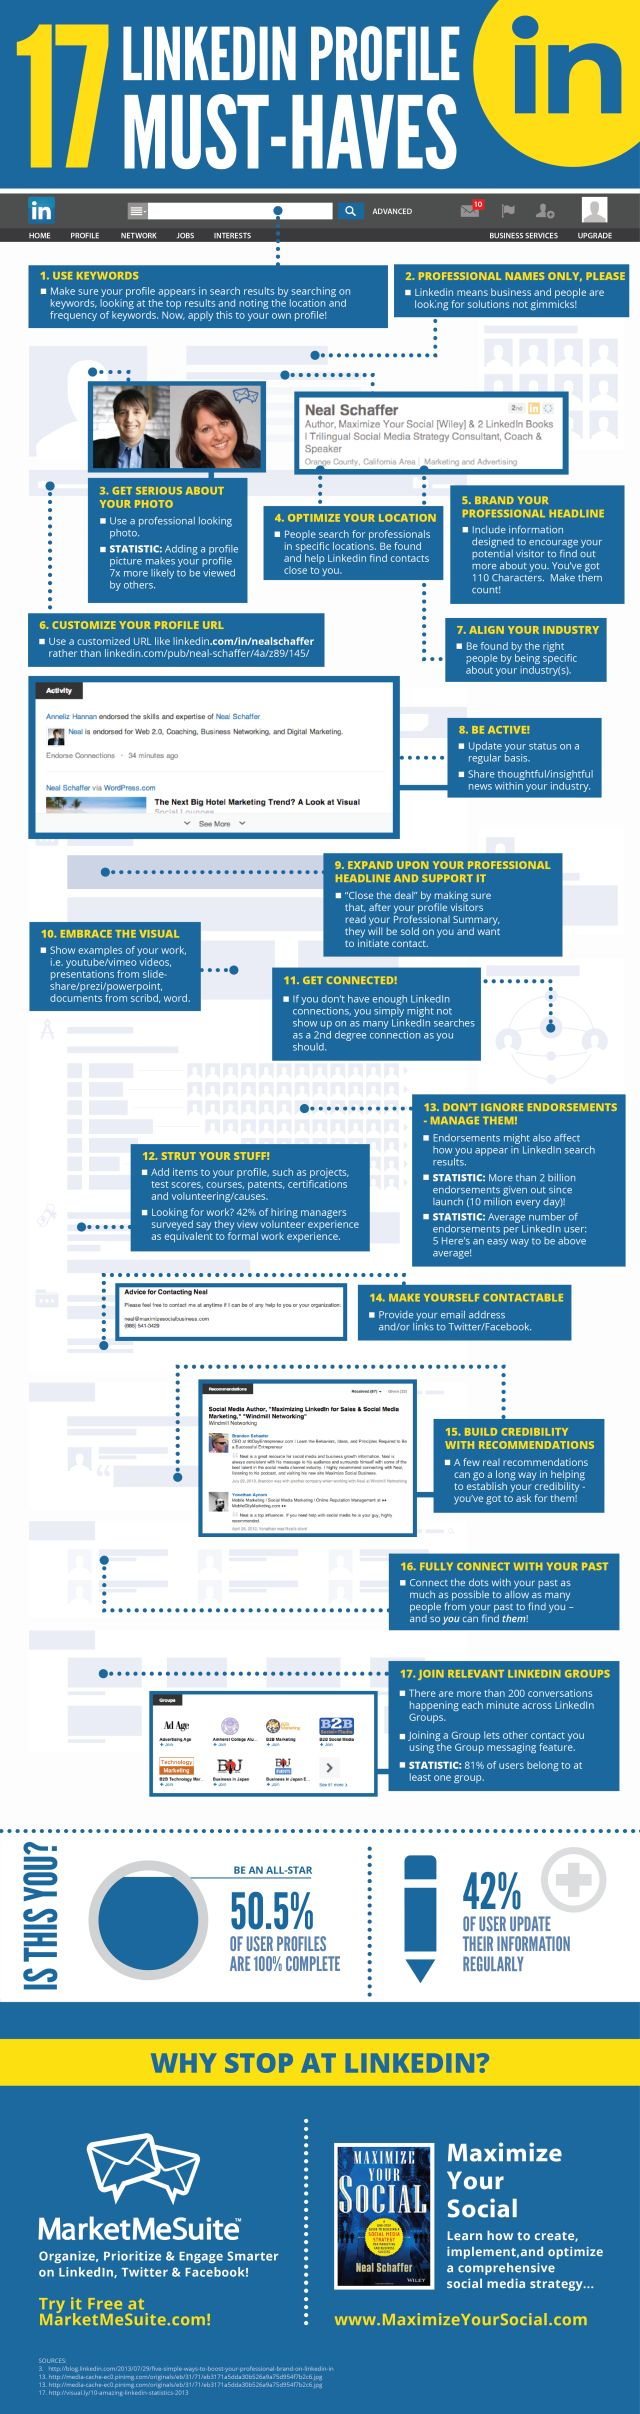 15 Linkedin Profile Musthaves #infographic